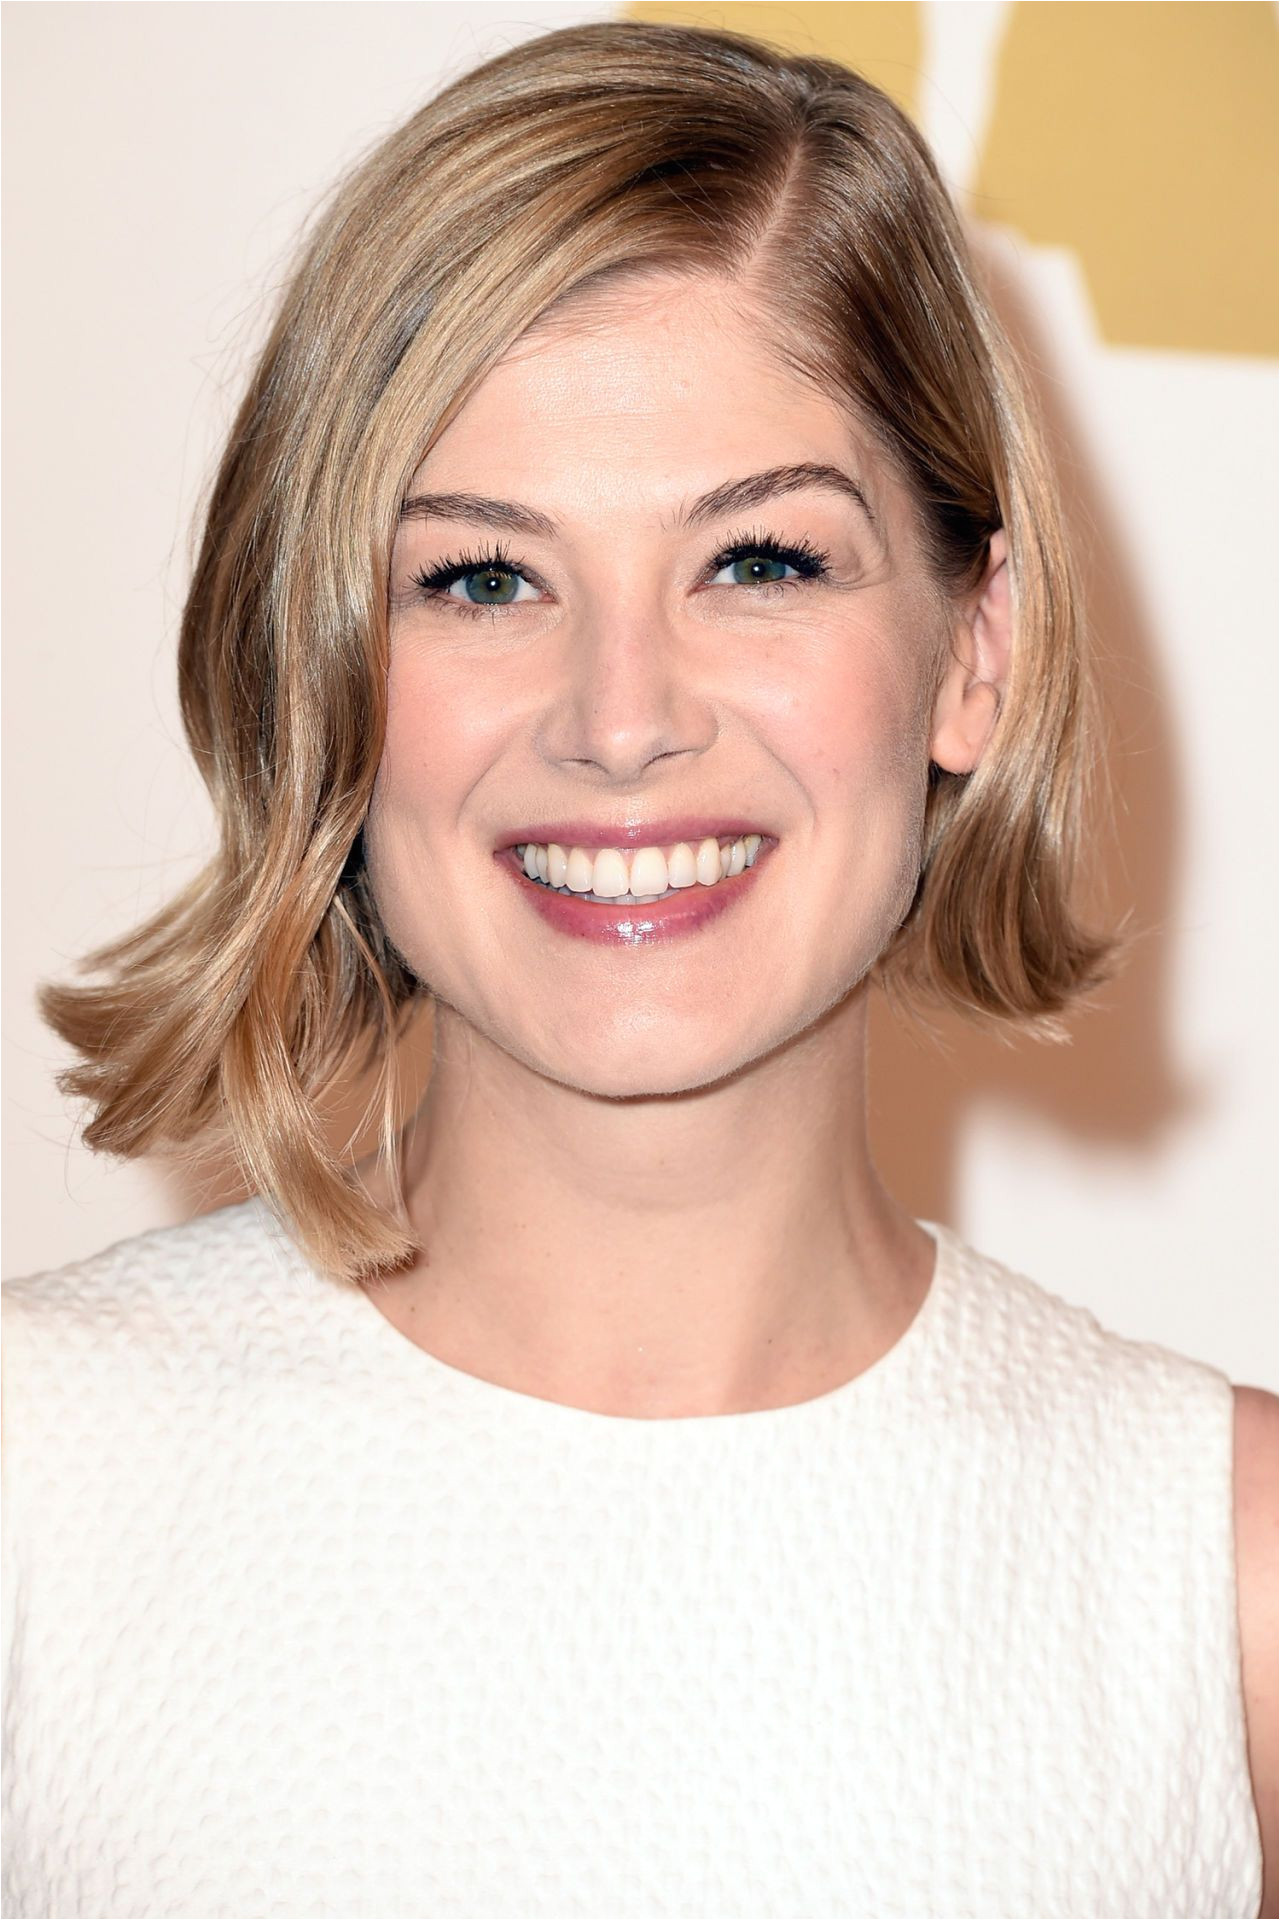 Our 10 Favorite Haircuts for Spring